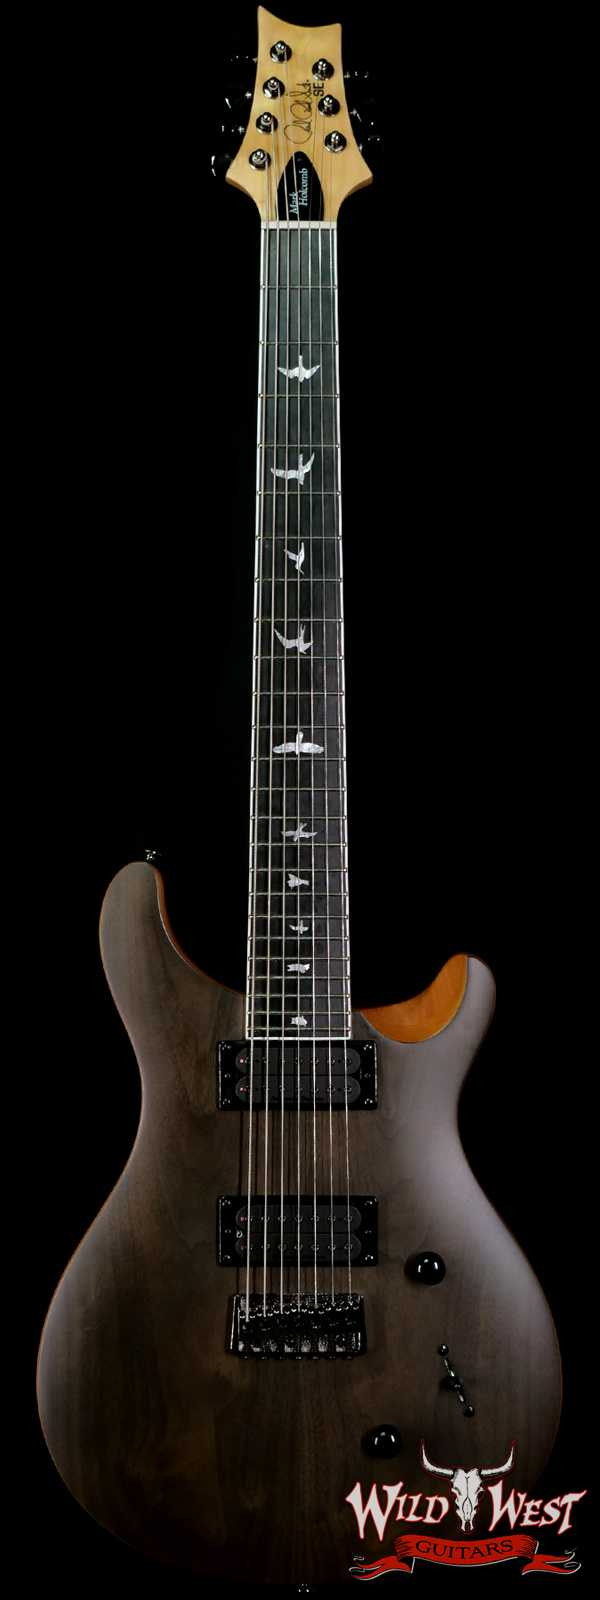 Paul Reed Smith PRS SE Mark Holcomb SVN Signature 7-String Guitar Natural Satin (Walnut Veneer) Blemish